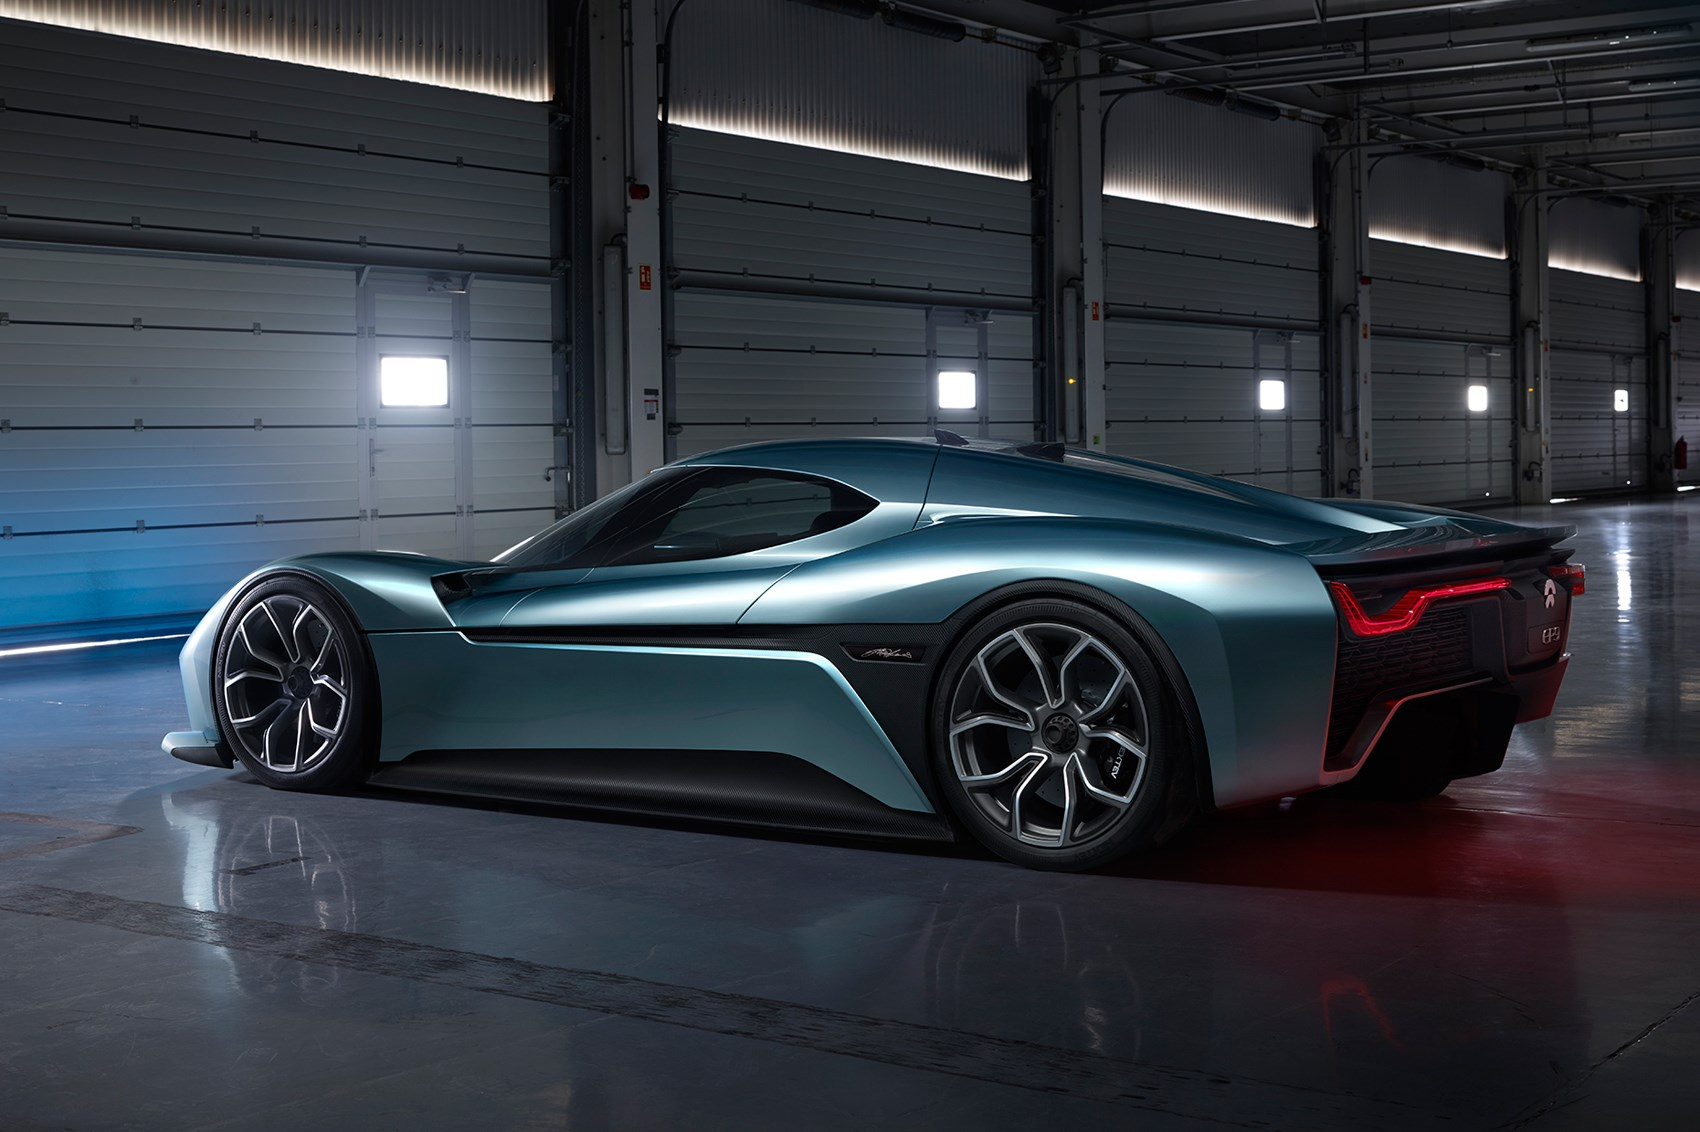 nurburgring lap record broken by nio ep electric supercar